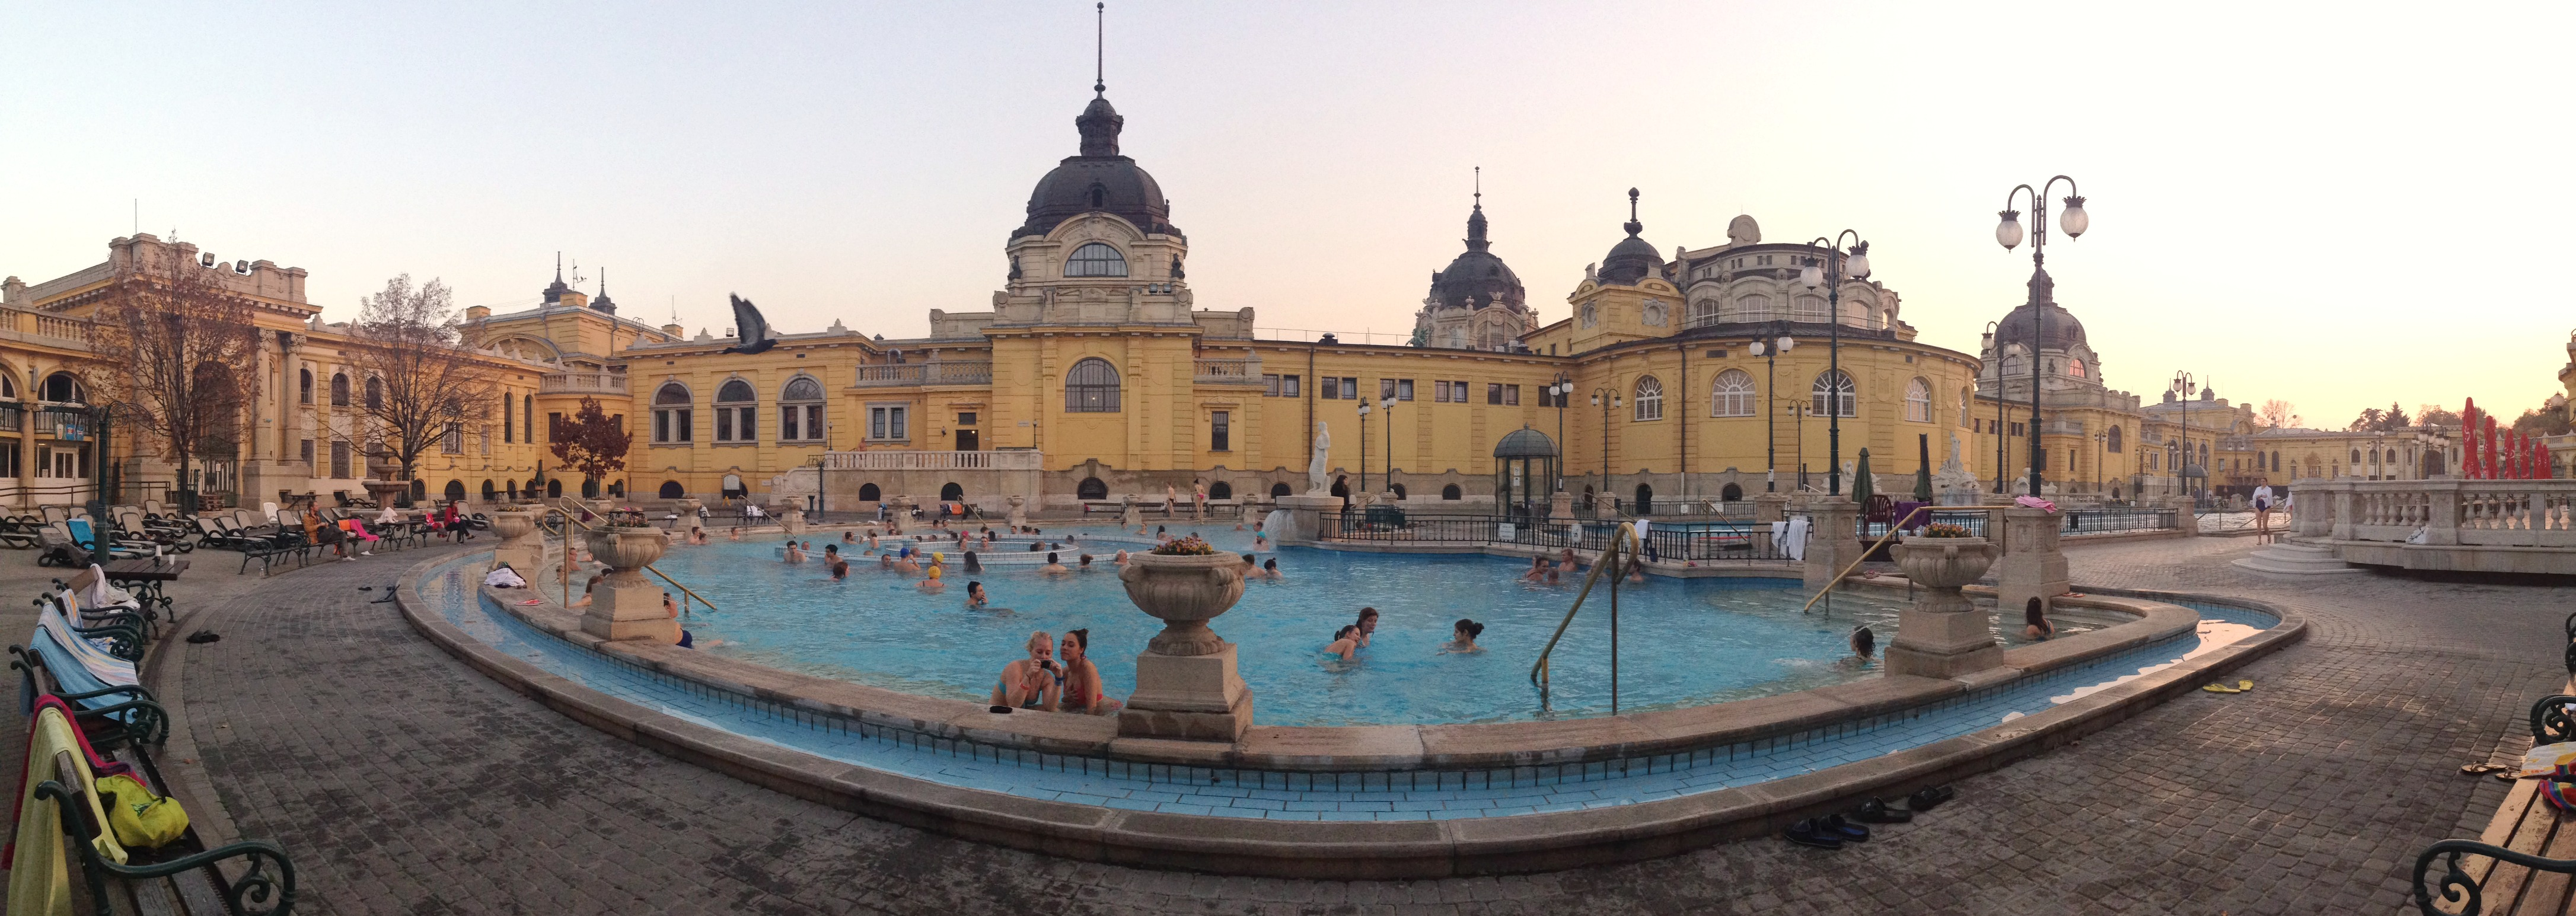 One of three outdoor pools at Szechenyi Thermal Baths